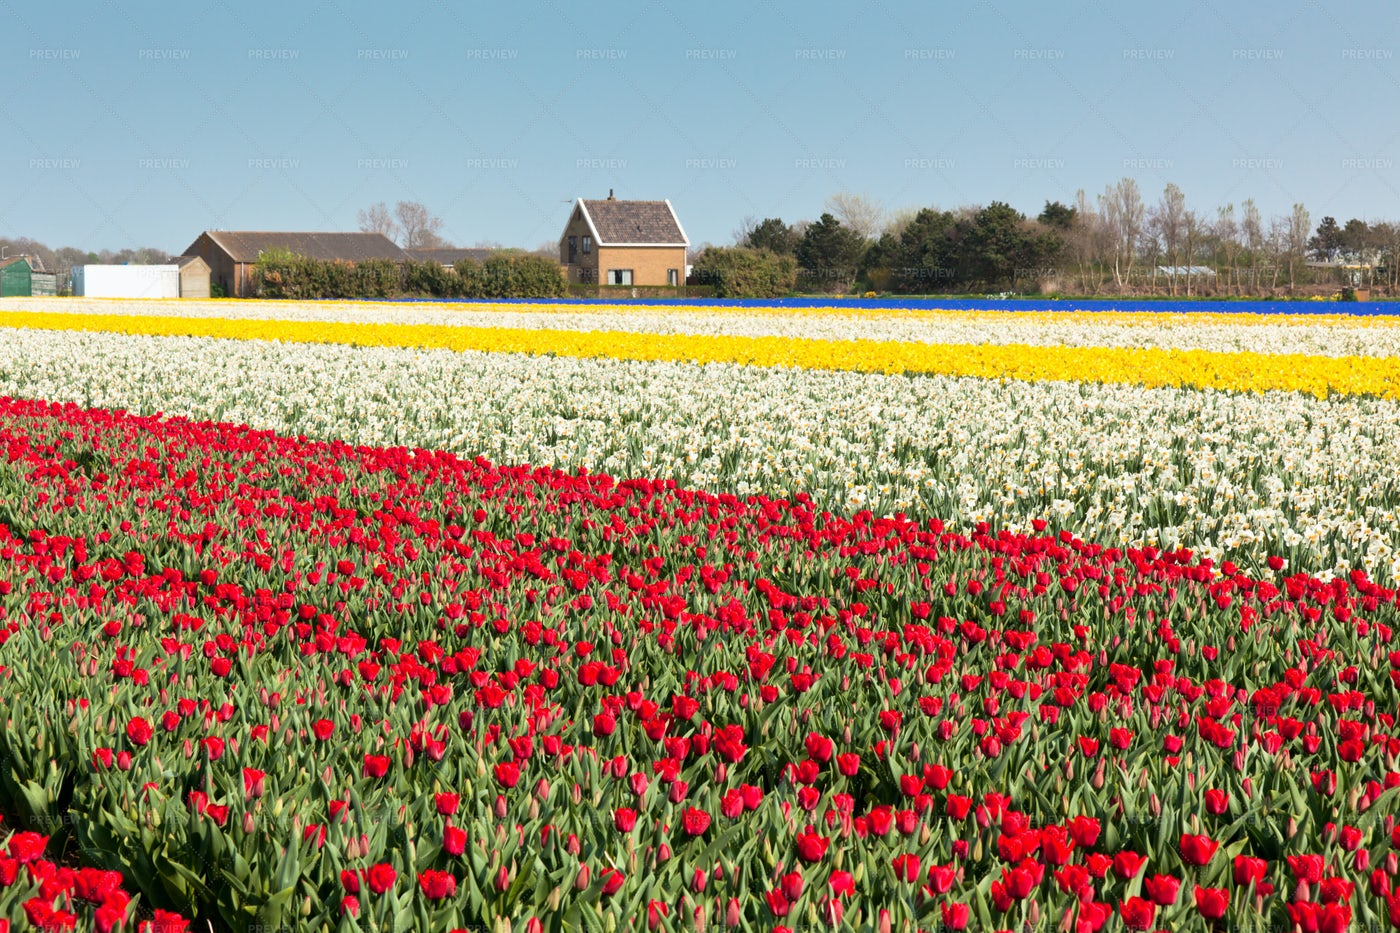 Narcissus And Red Tulip Field: Stock Photos